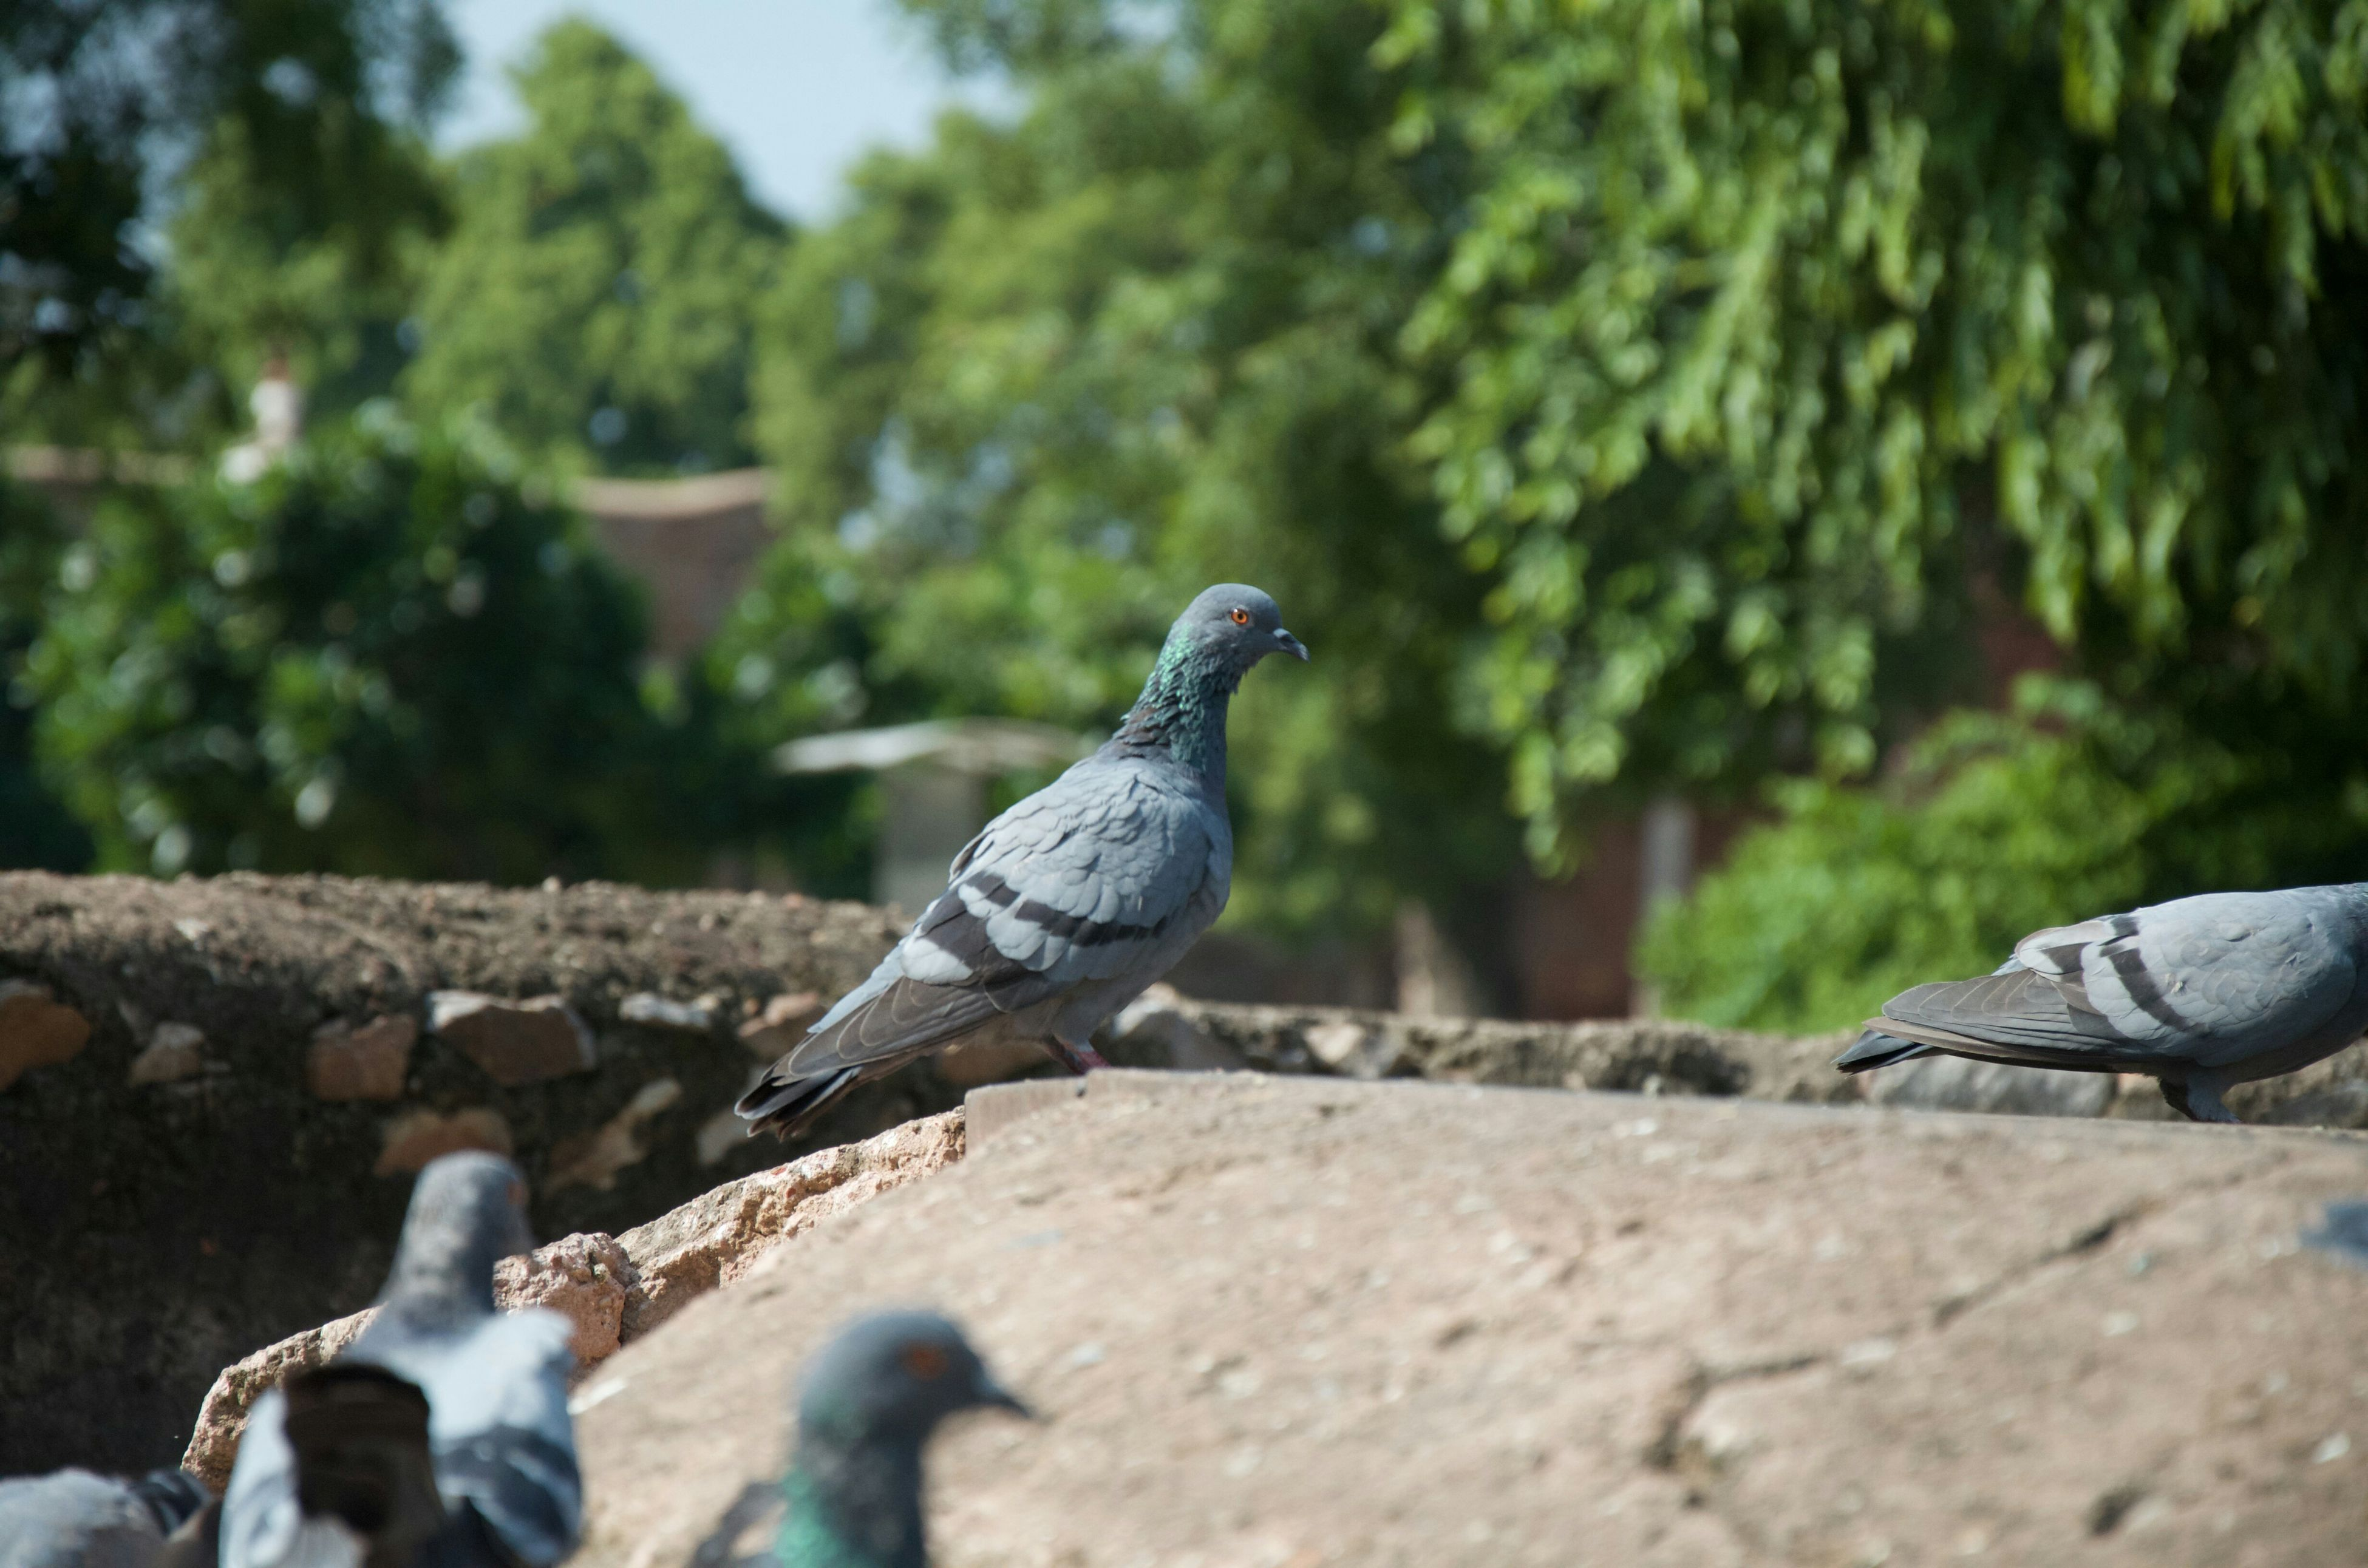 bird, animal themes, animals in the wild, one animal, wildlife, pigeon, perching, focus on foreground, full length, tree, selective focus, two animals, railing, day, outdoors, nature, retaining wall, close-up, side view, sparrow